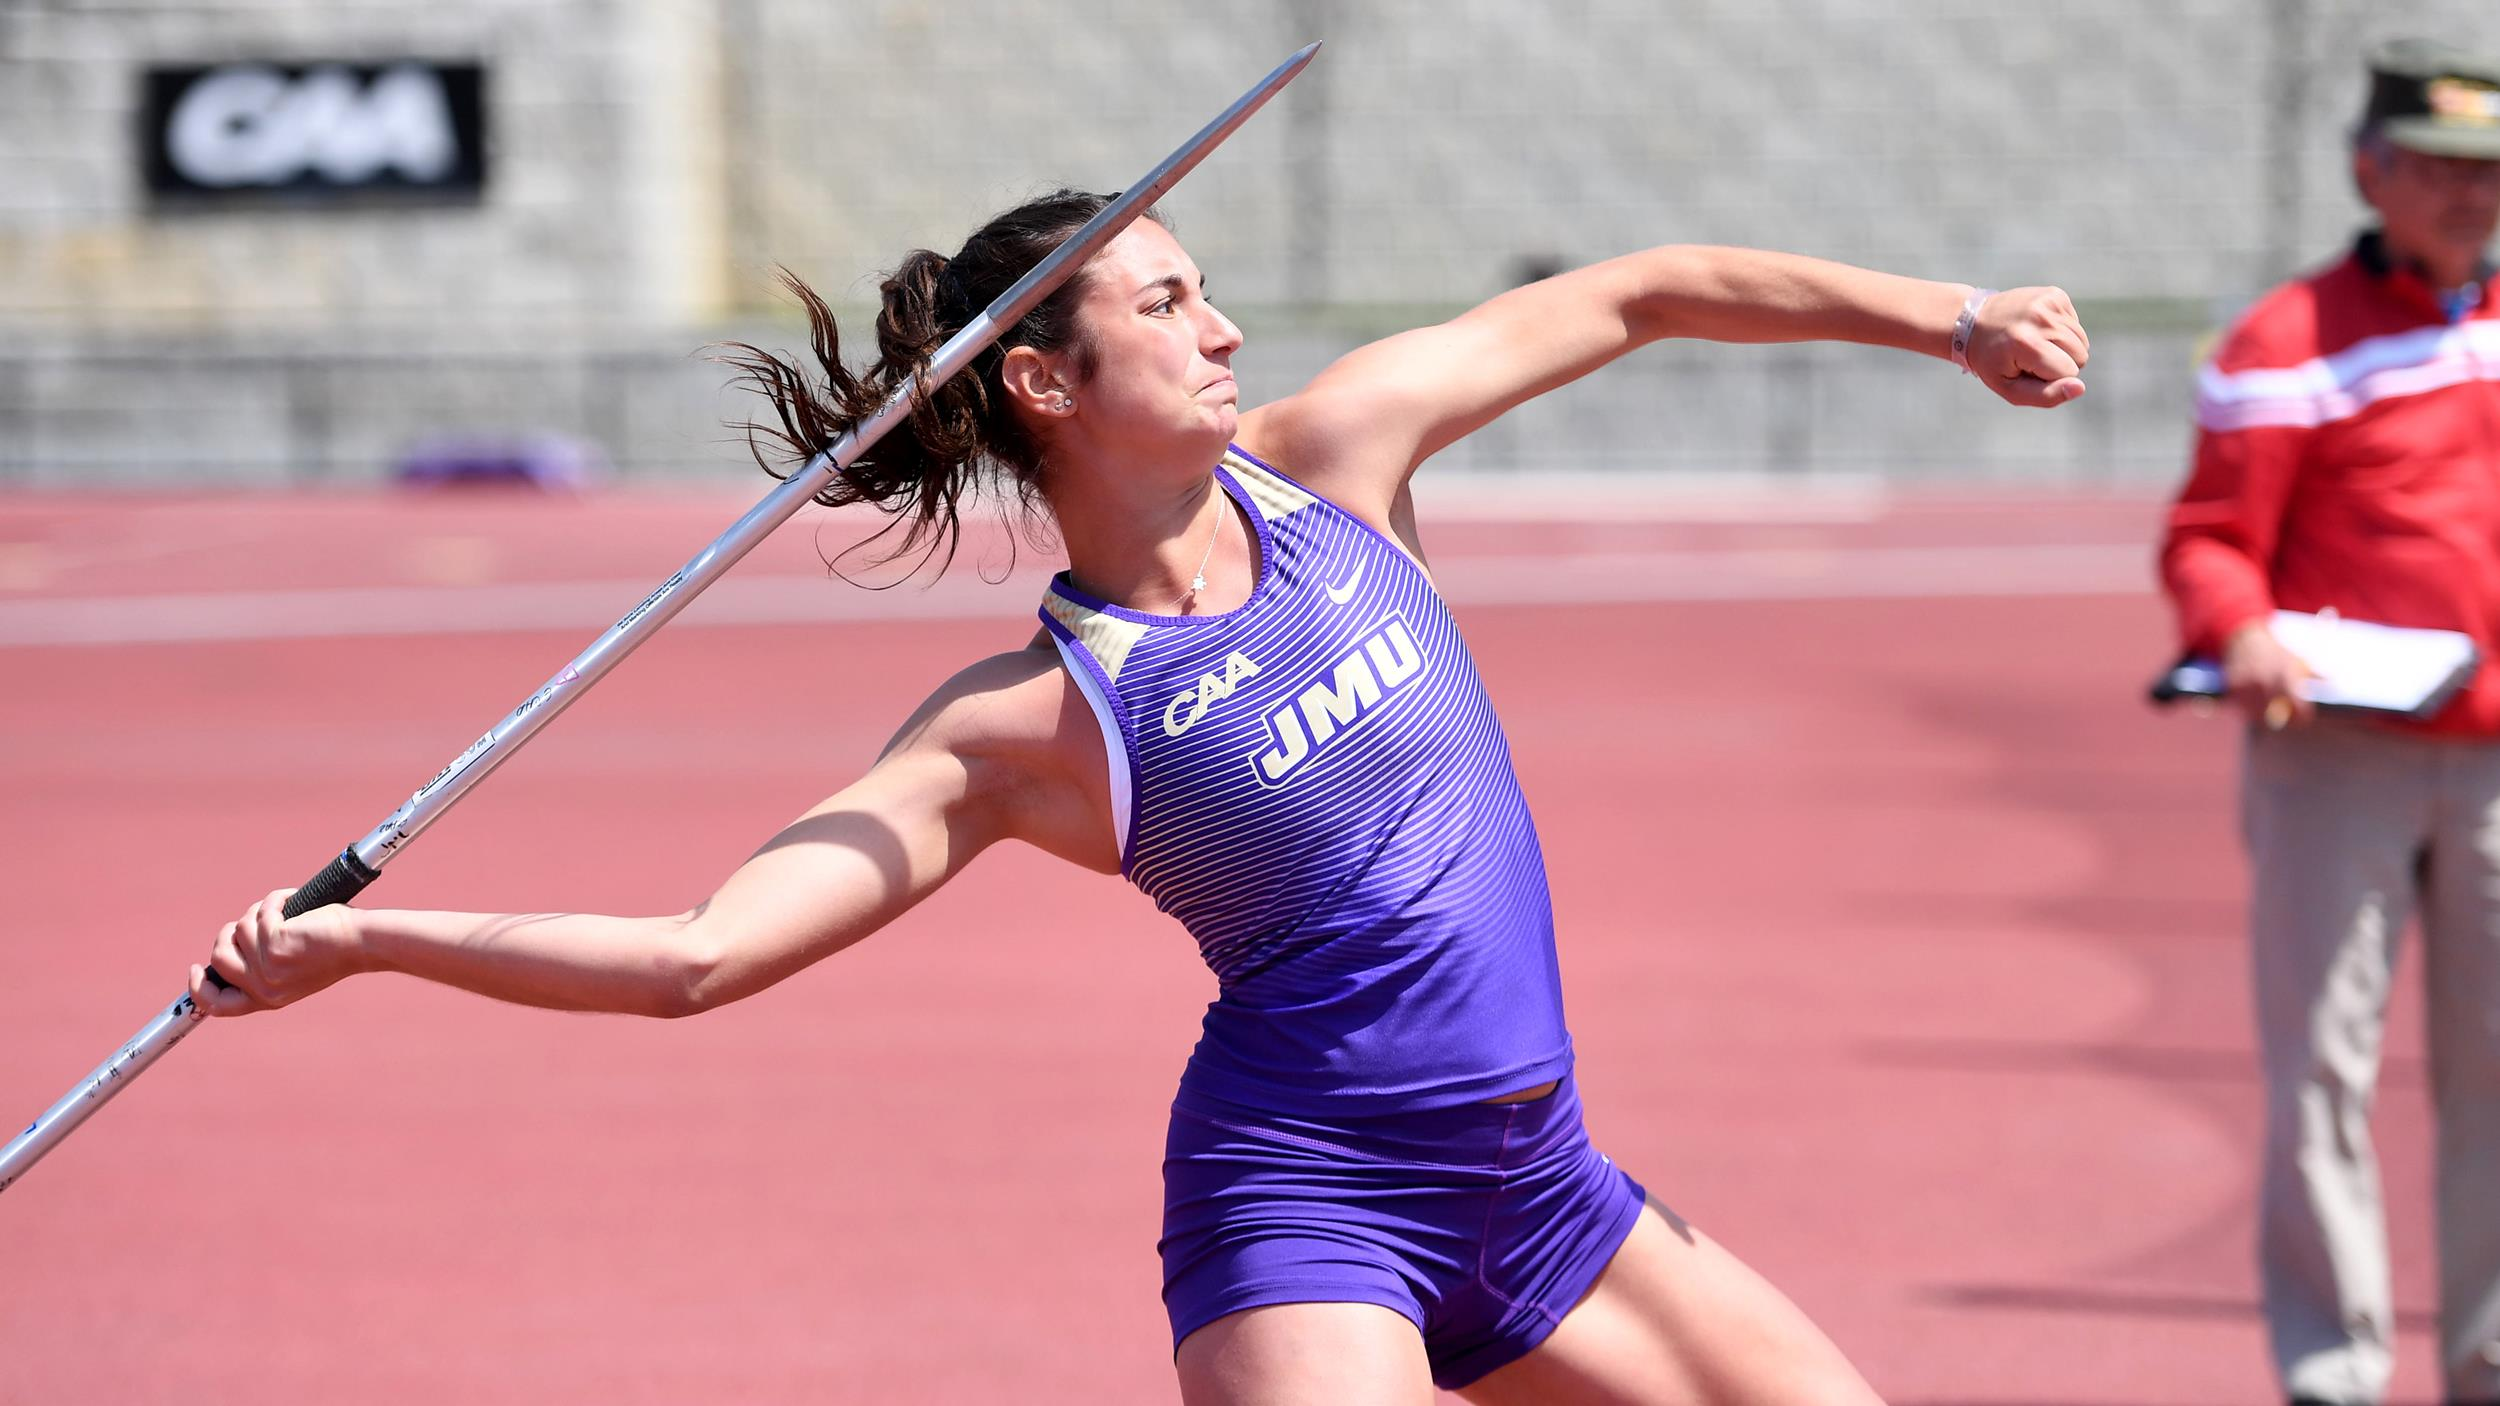 Track & Field: Serratore Ready for NCAA East Preliminary